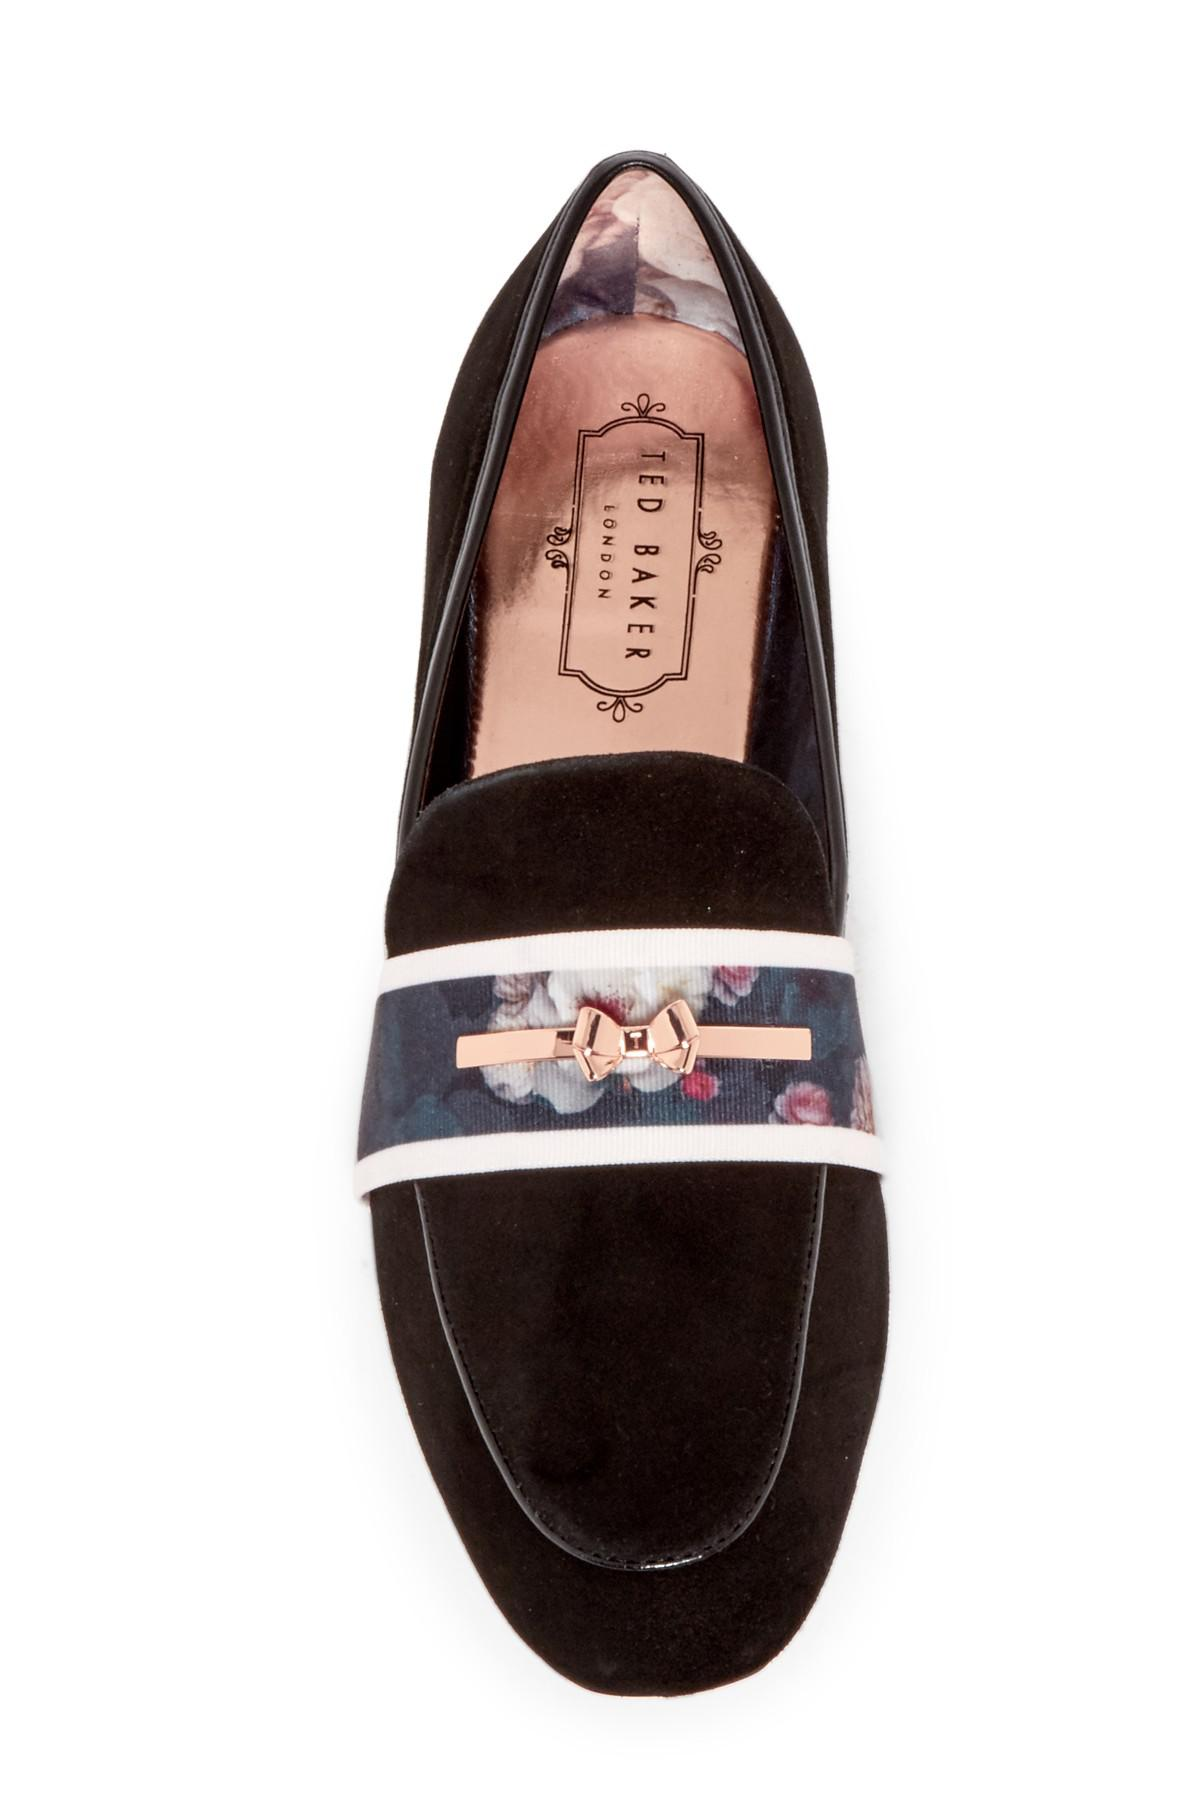 aa7dabca61f3 Lyst - Ted Baker Eliena Suede Banded Loafer in Black